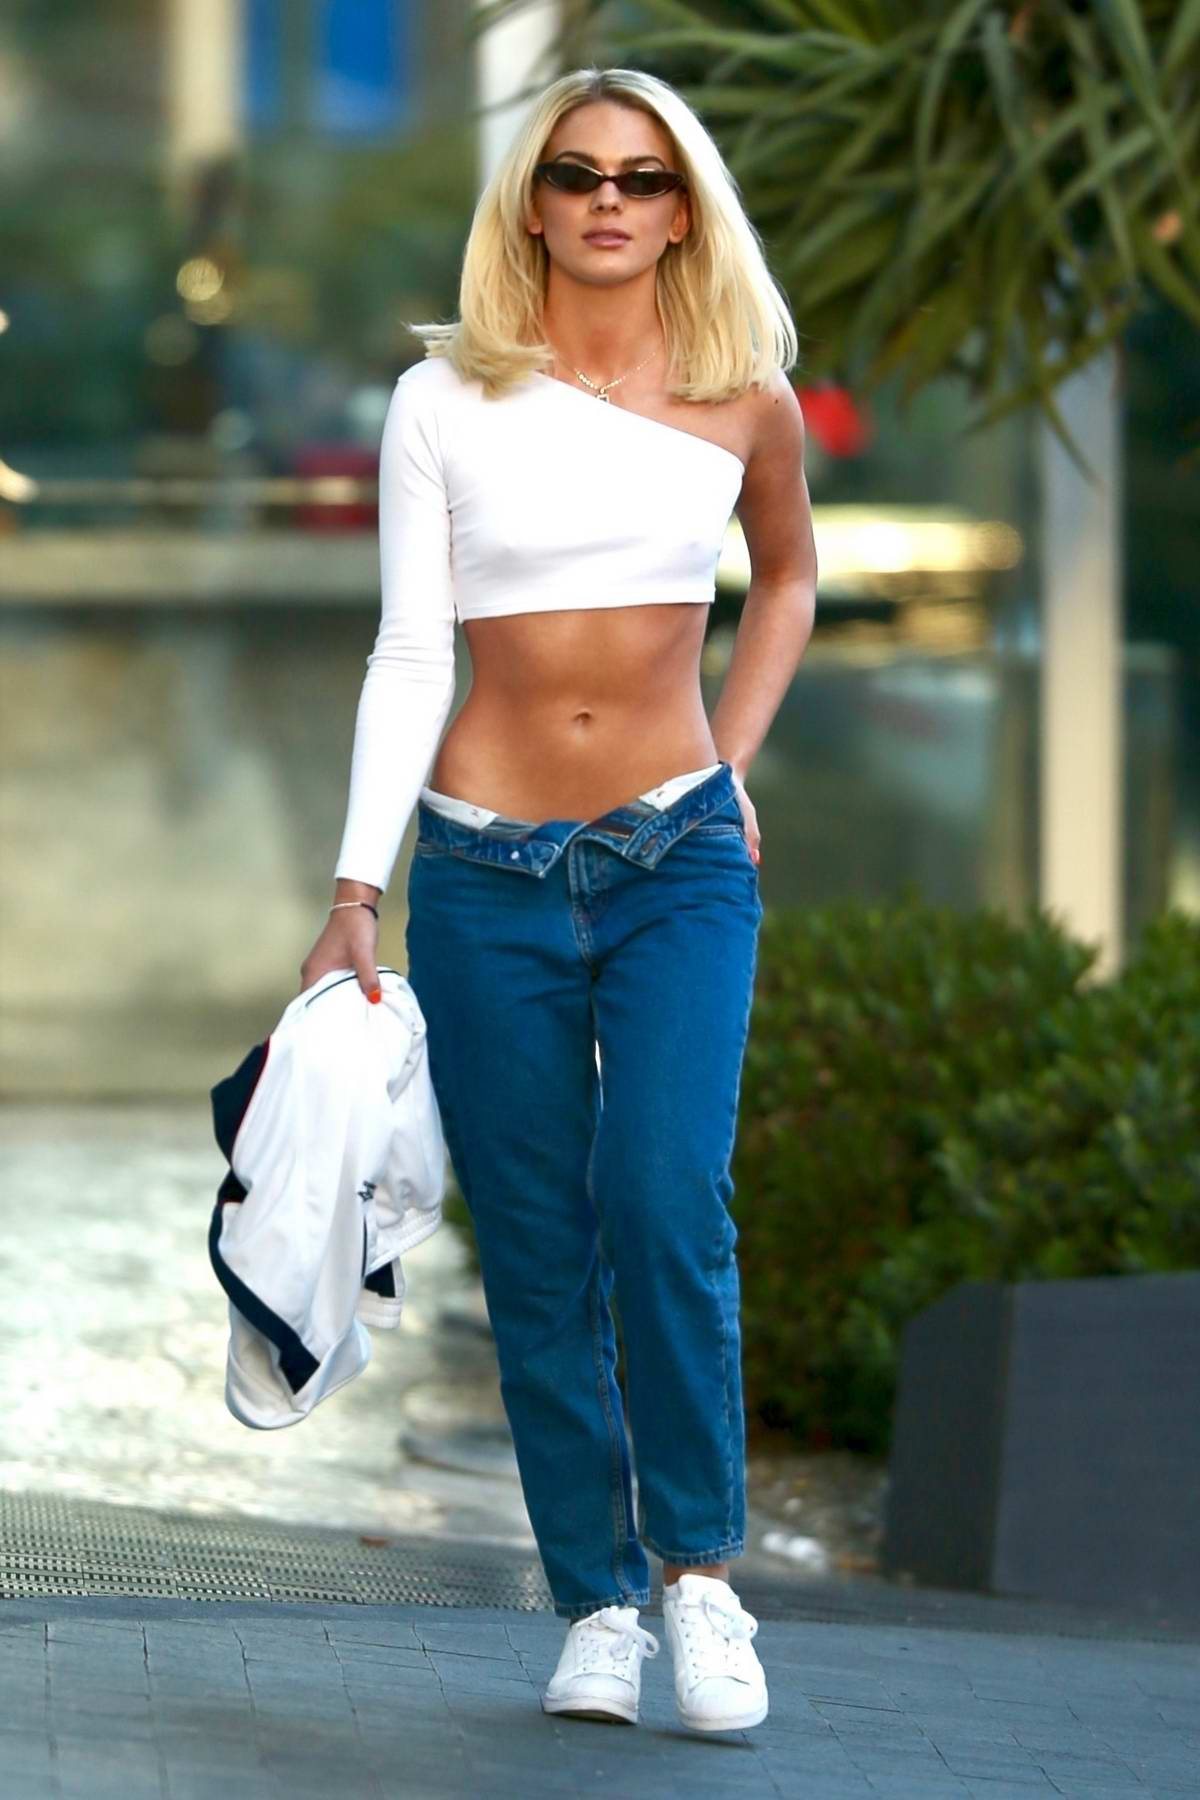 Louisa Johnson shows off her toned abs in a white crop top and low waist jeans while out in Los Angeles